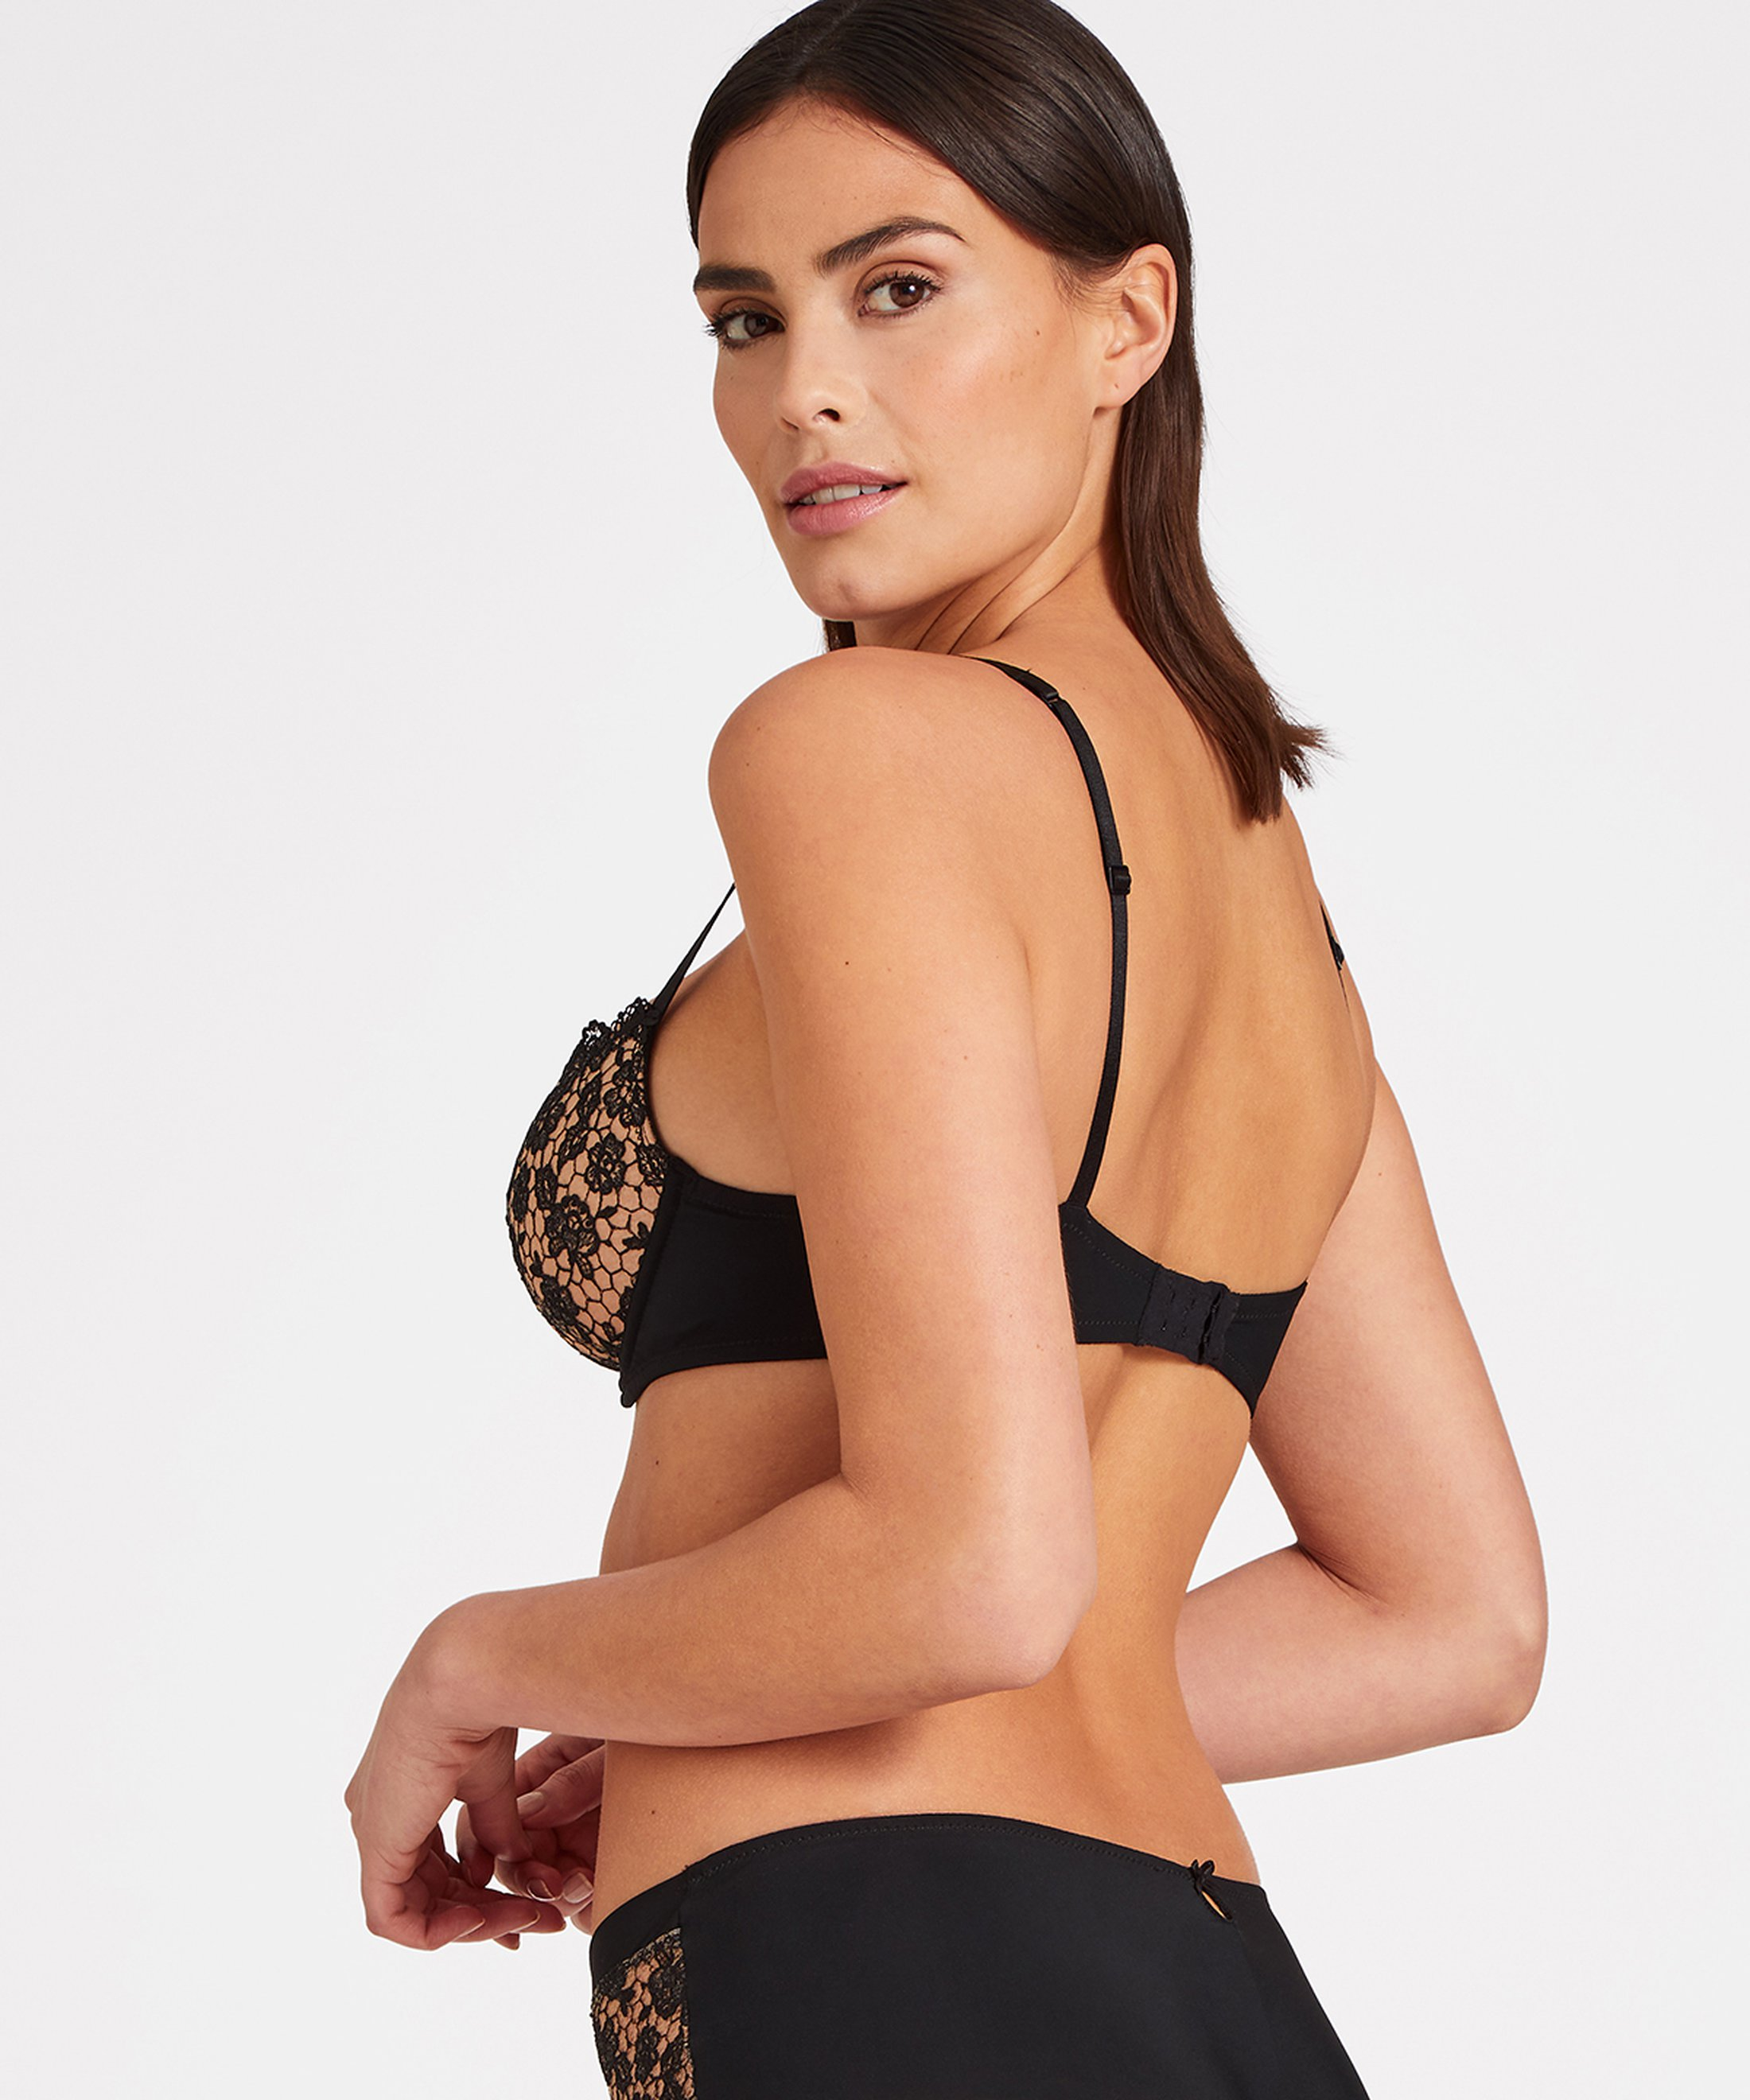 SECRET DE CHARME Moulded push-up bra Black | Aubade